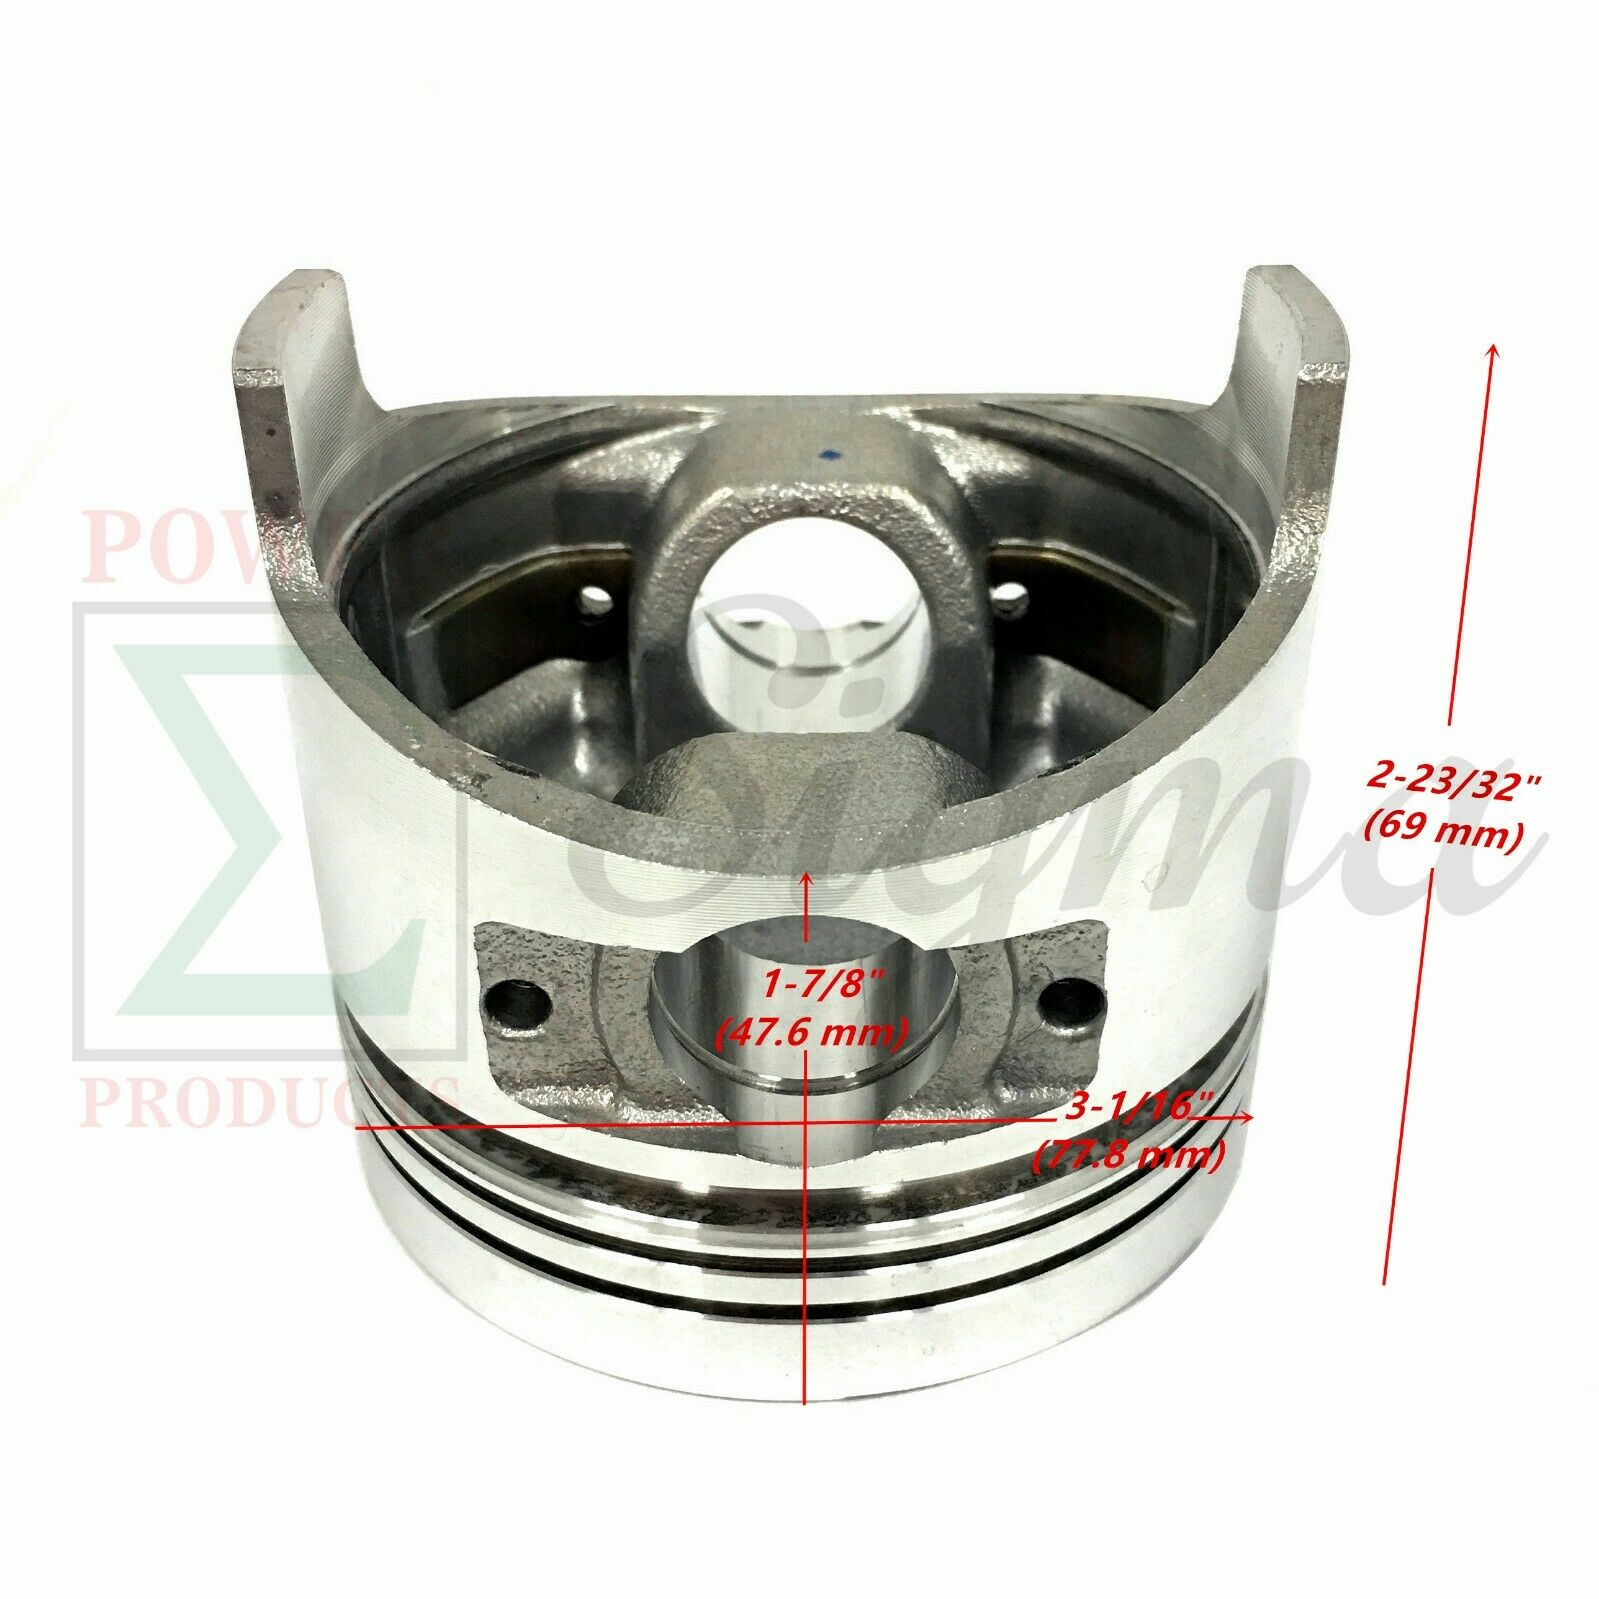 Piston Pin Ring For China 178F 6HP Diesel Engine & Yanmar L70 Engine 78 MM